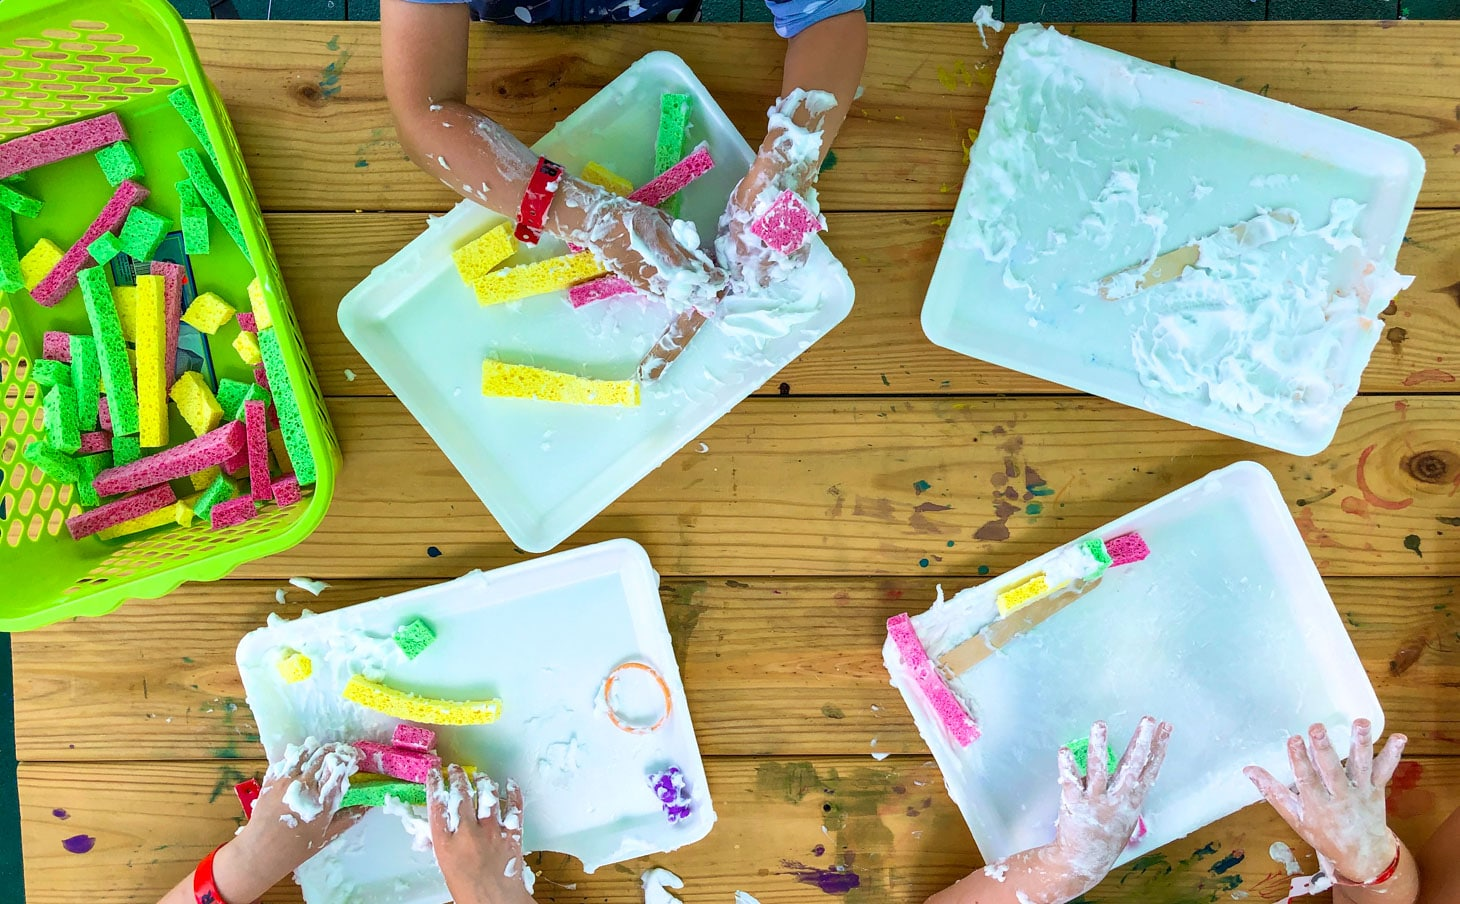 Campers making messy art work and having fun.